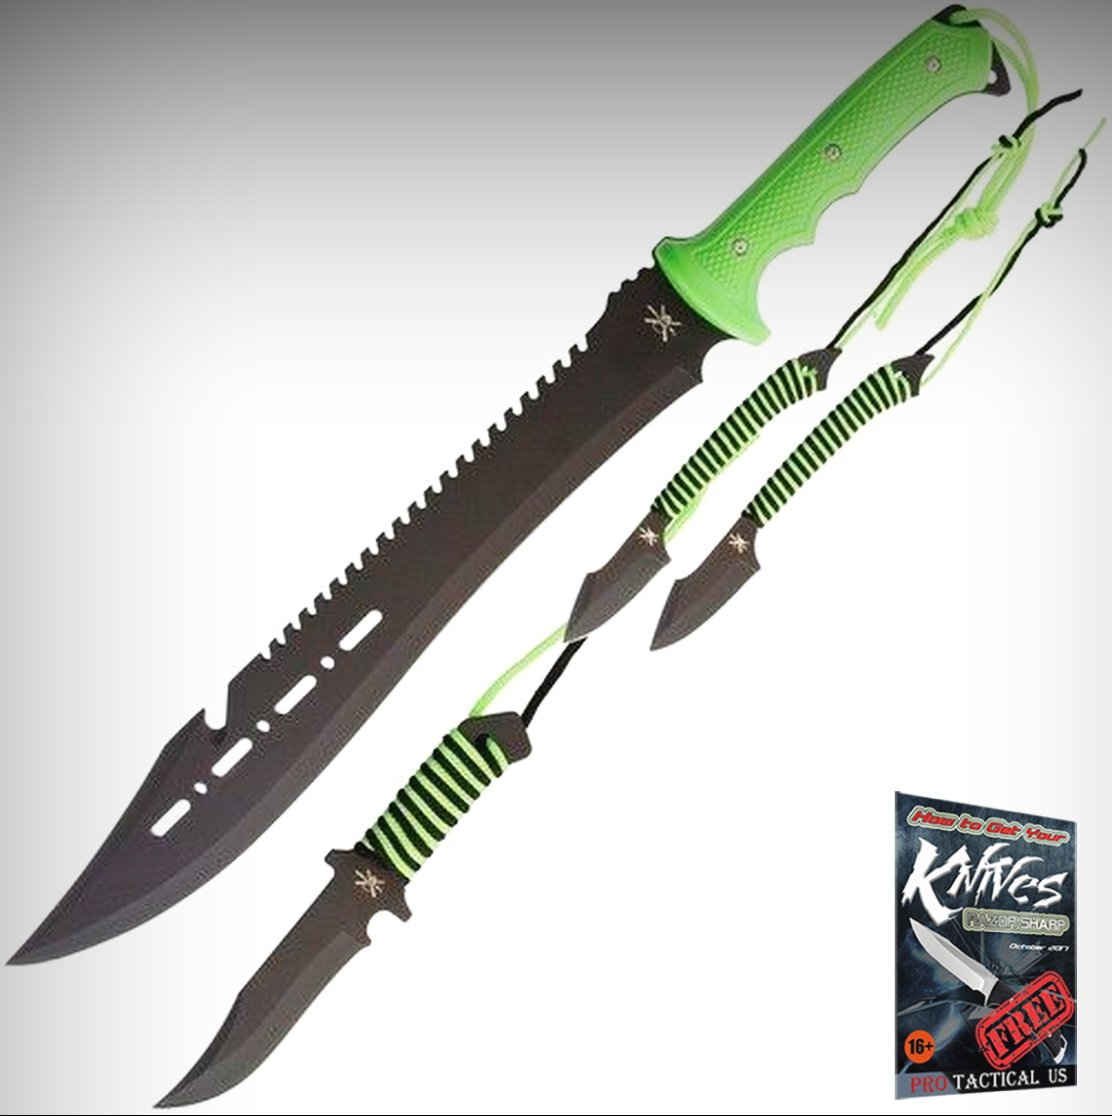 Frost TX100 Outdoor Limited Elite Knife Set (Machete, Bowie & 2 Throwing Knives) + free eBook by ProTactical'US